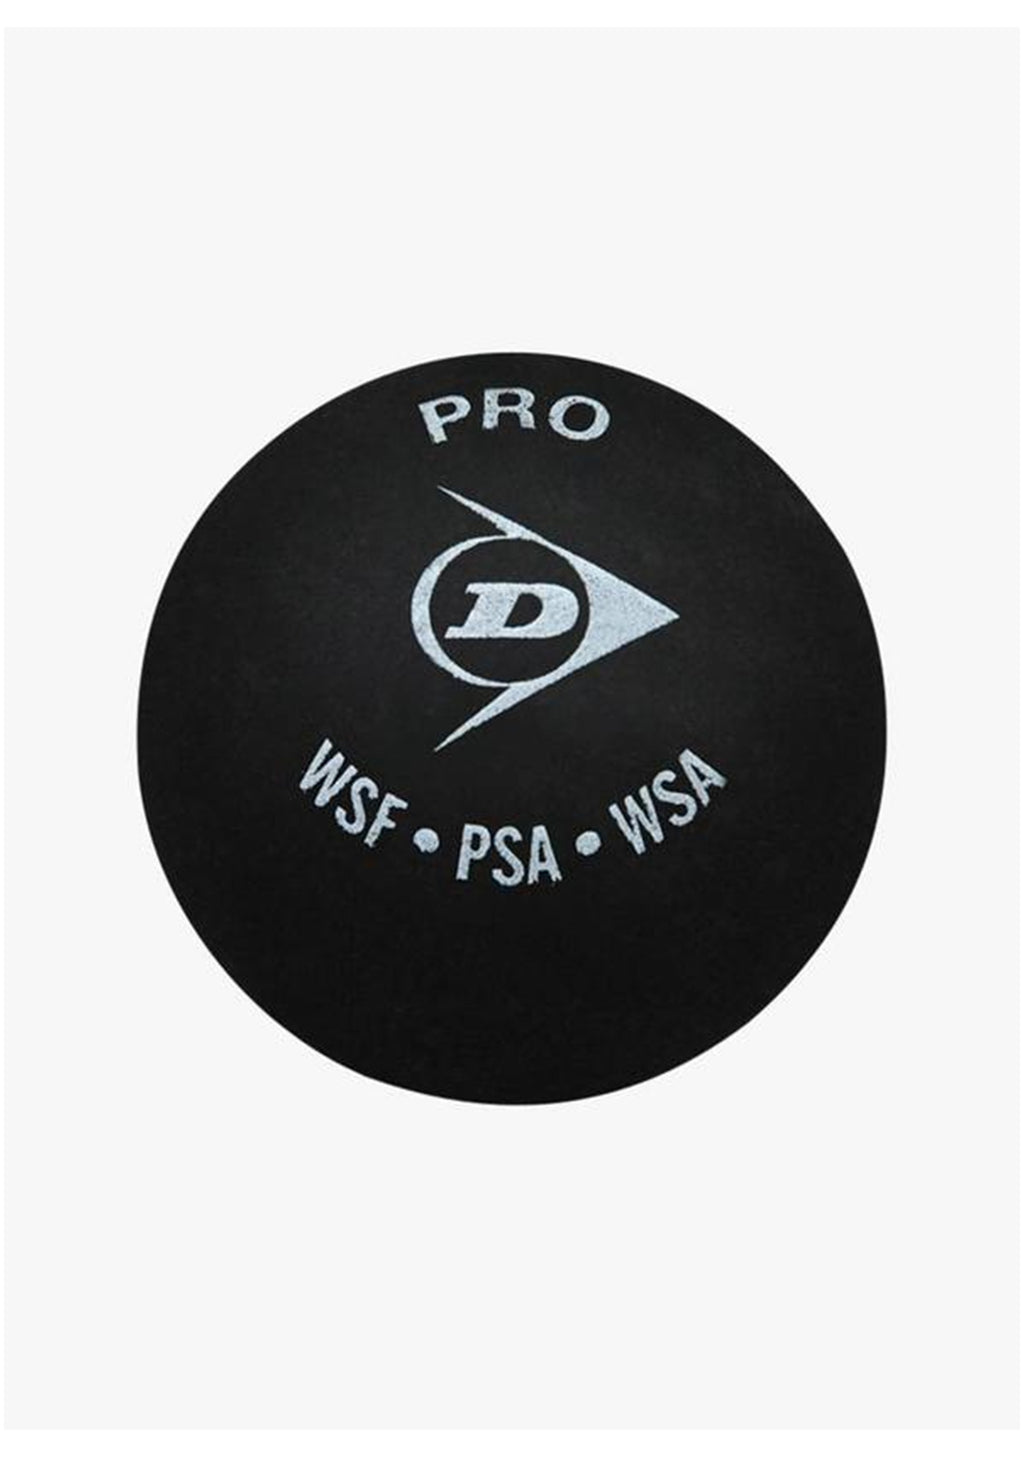 DUNLOP PRO SQUASH BALL (DOUBLE YELLOW DOT) <BR> DWDQ03731A